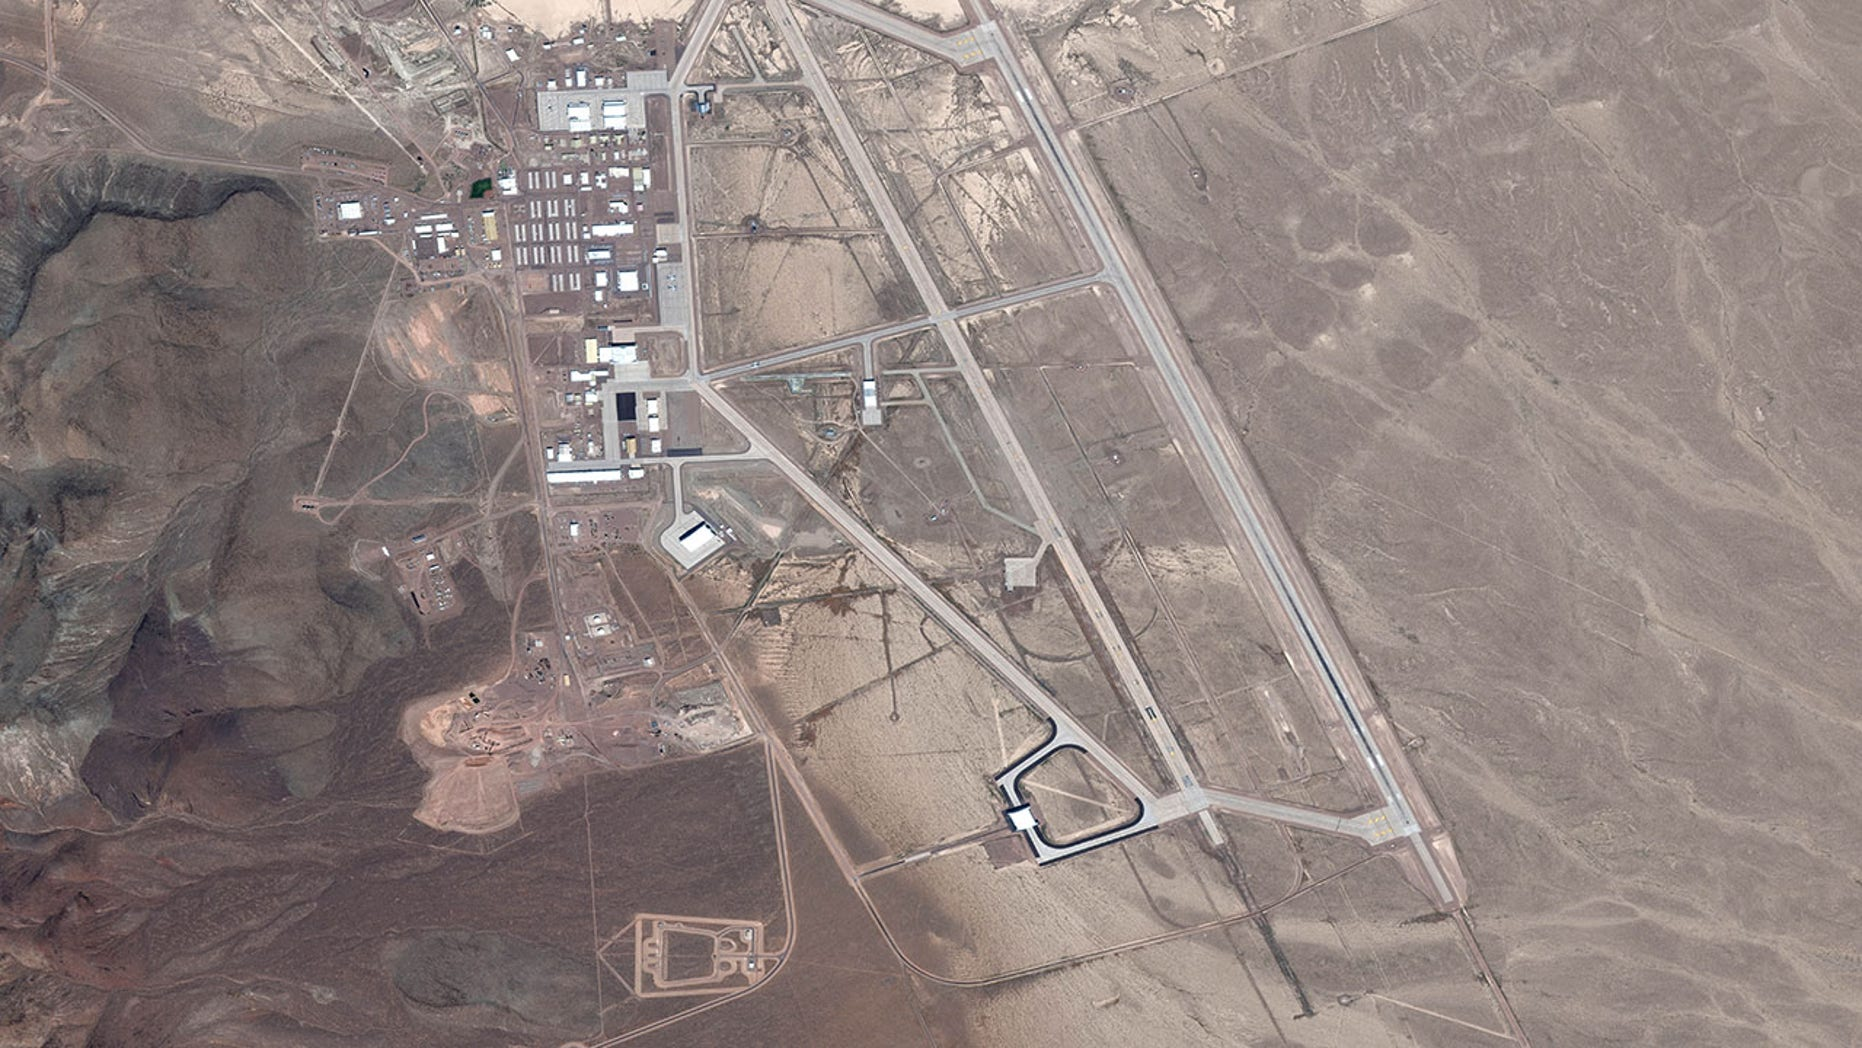 Thousands of people have taken a Facebook pledge to storm Area 51